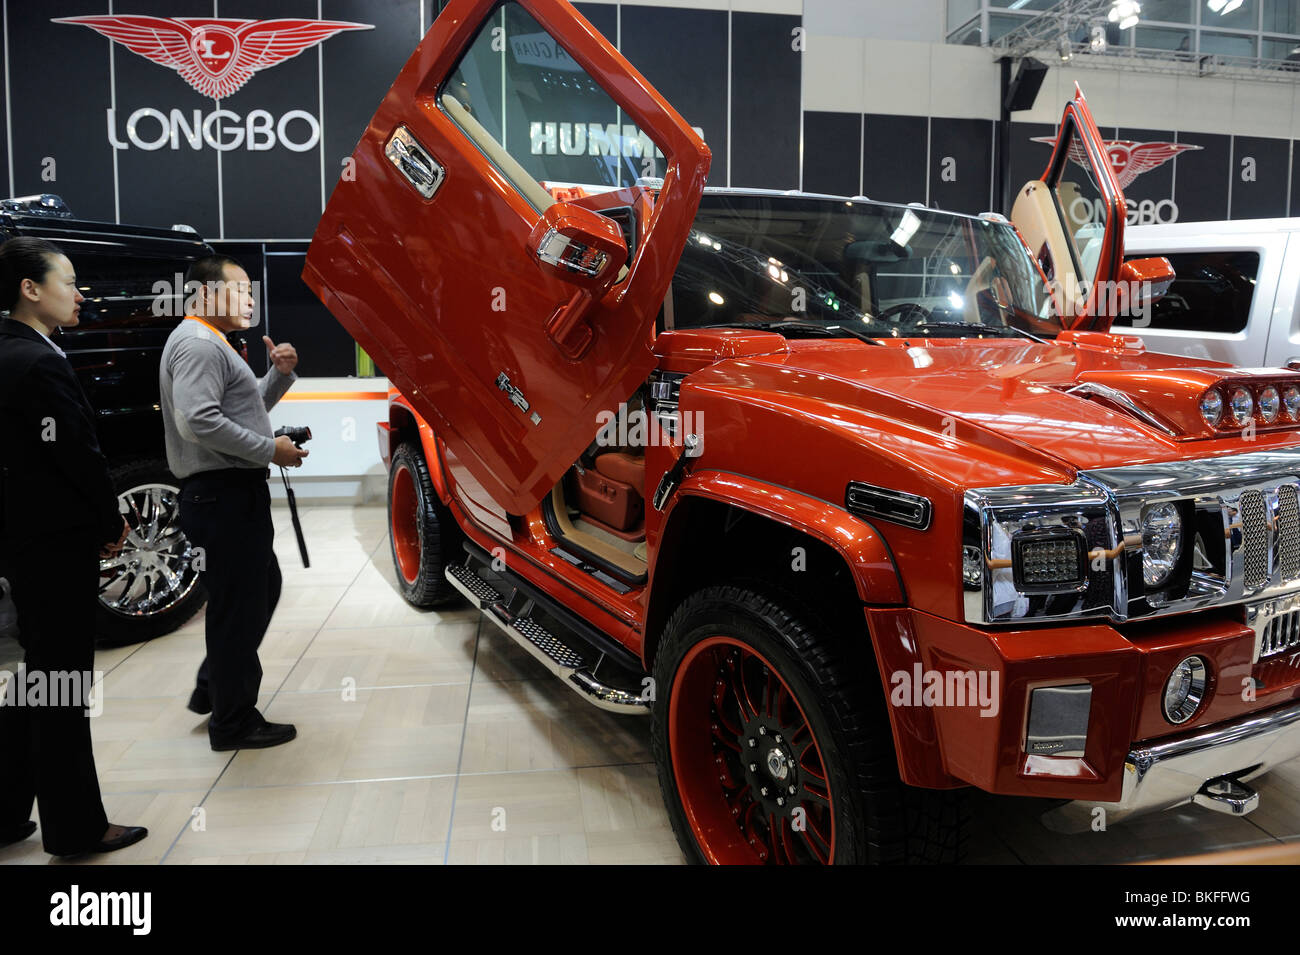 A Chinese man looks at a Longbo customized Hummer H2 at the Beiijng Auto Show. 23-Apr-2010 - Stock Image